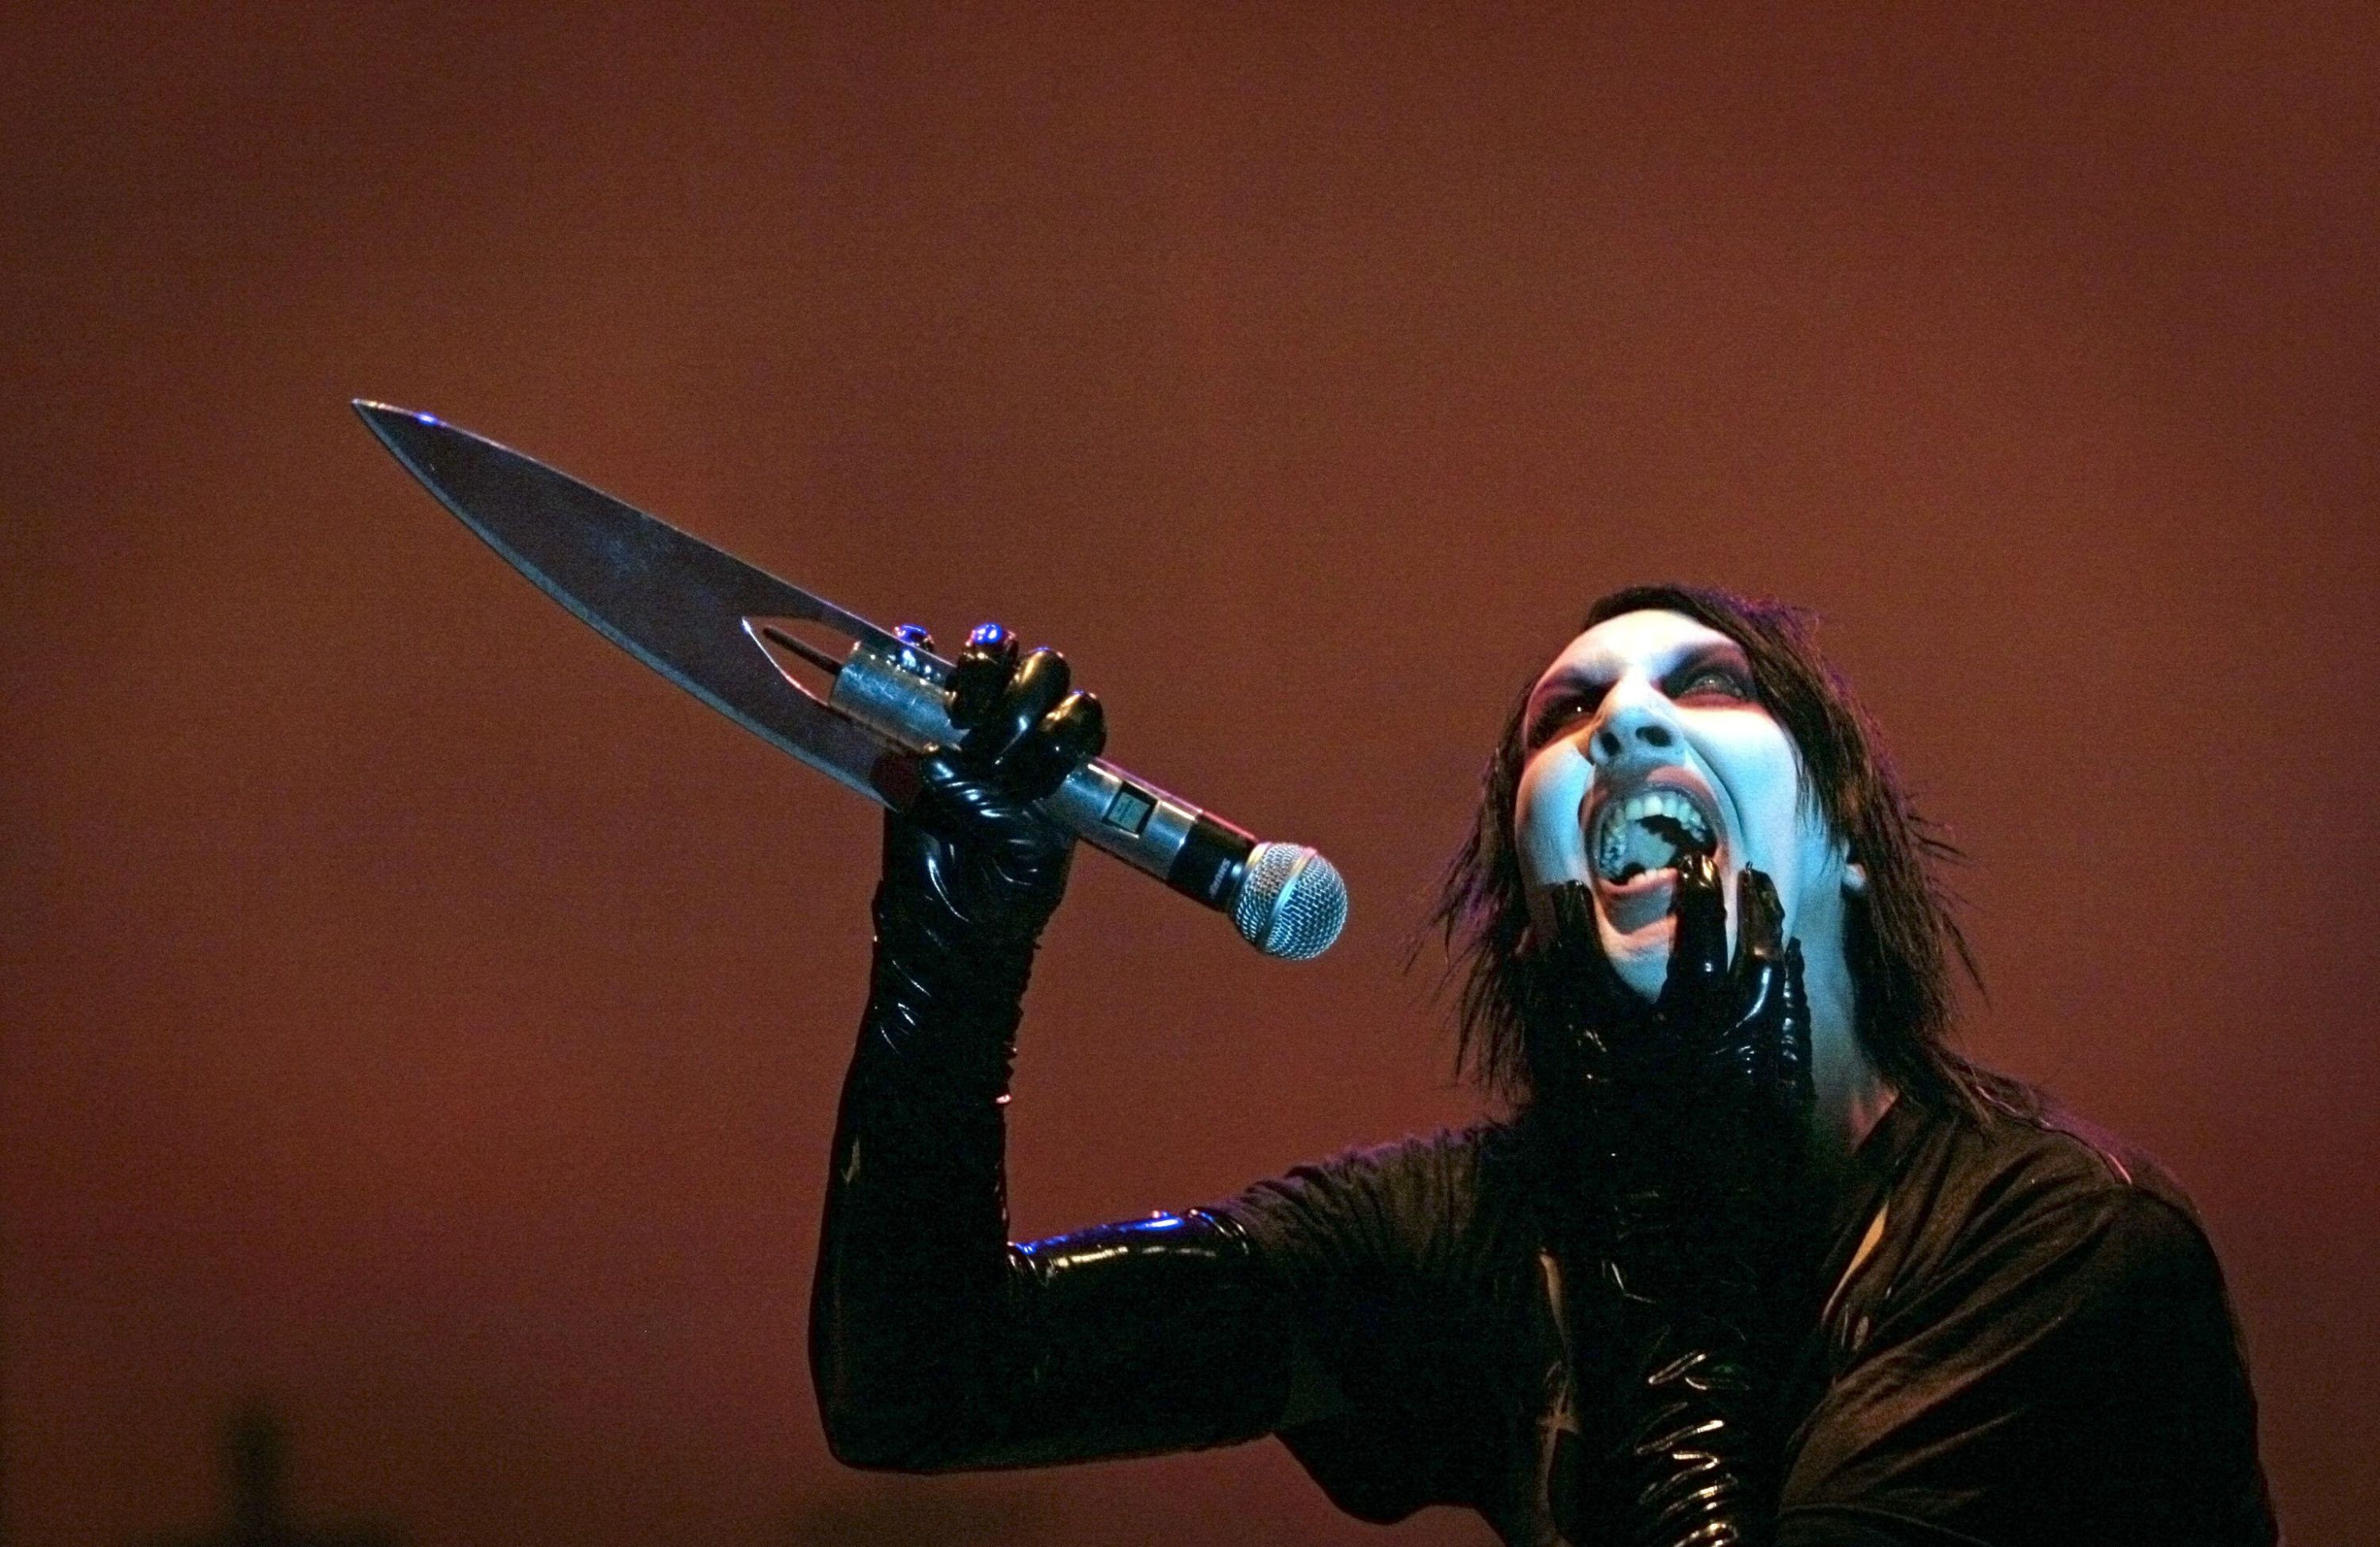 marilyn manson wallpaper pictures free by Walton Sinclair (2016-08-15)